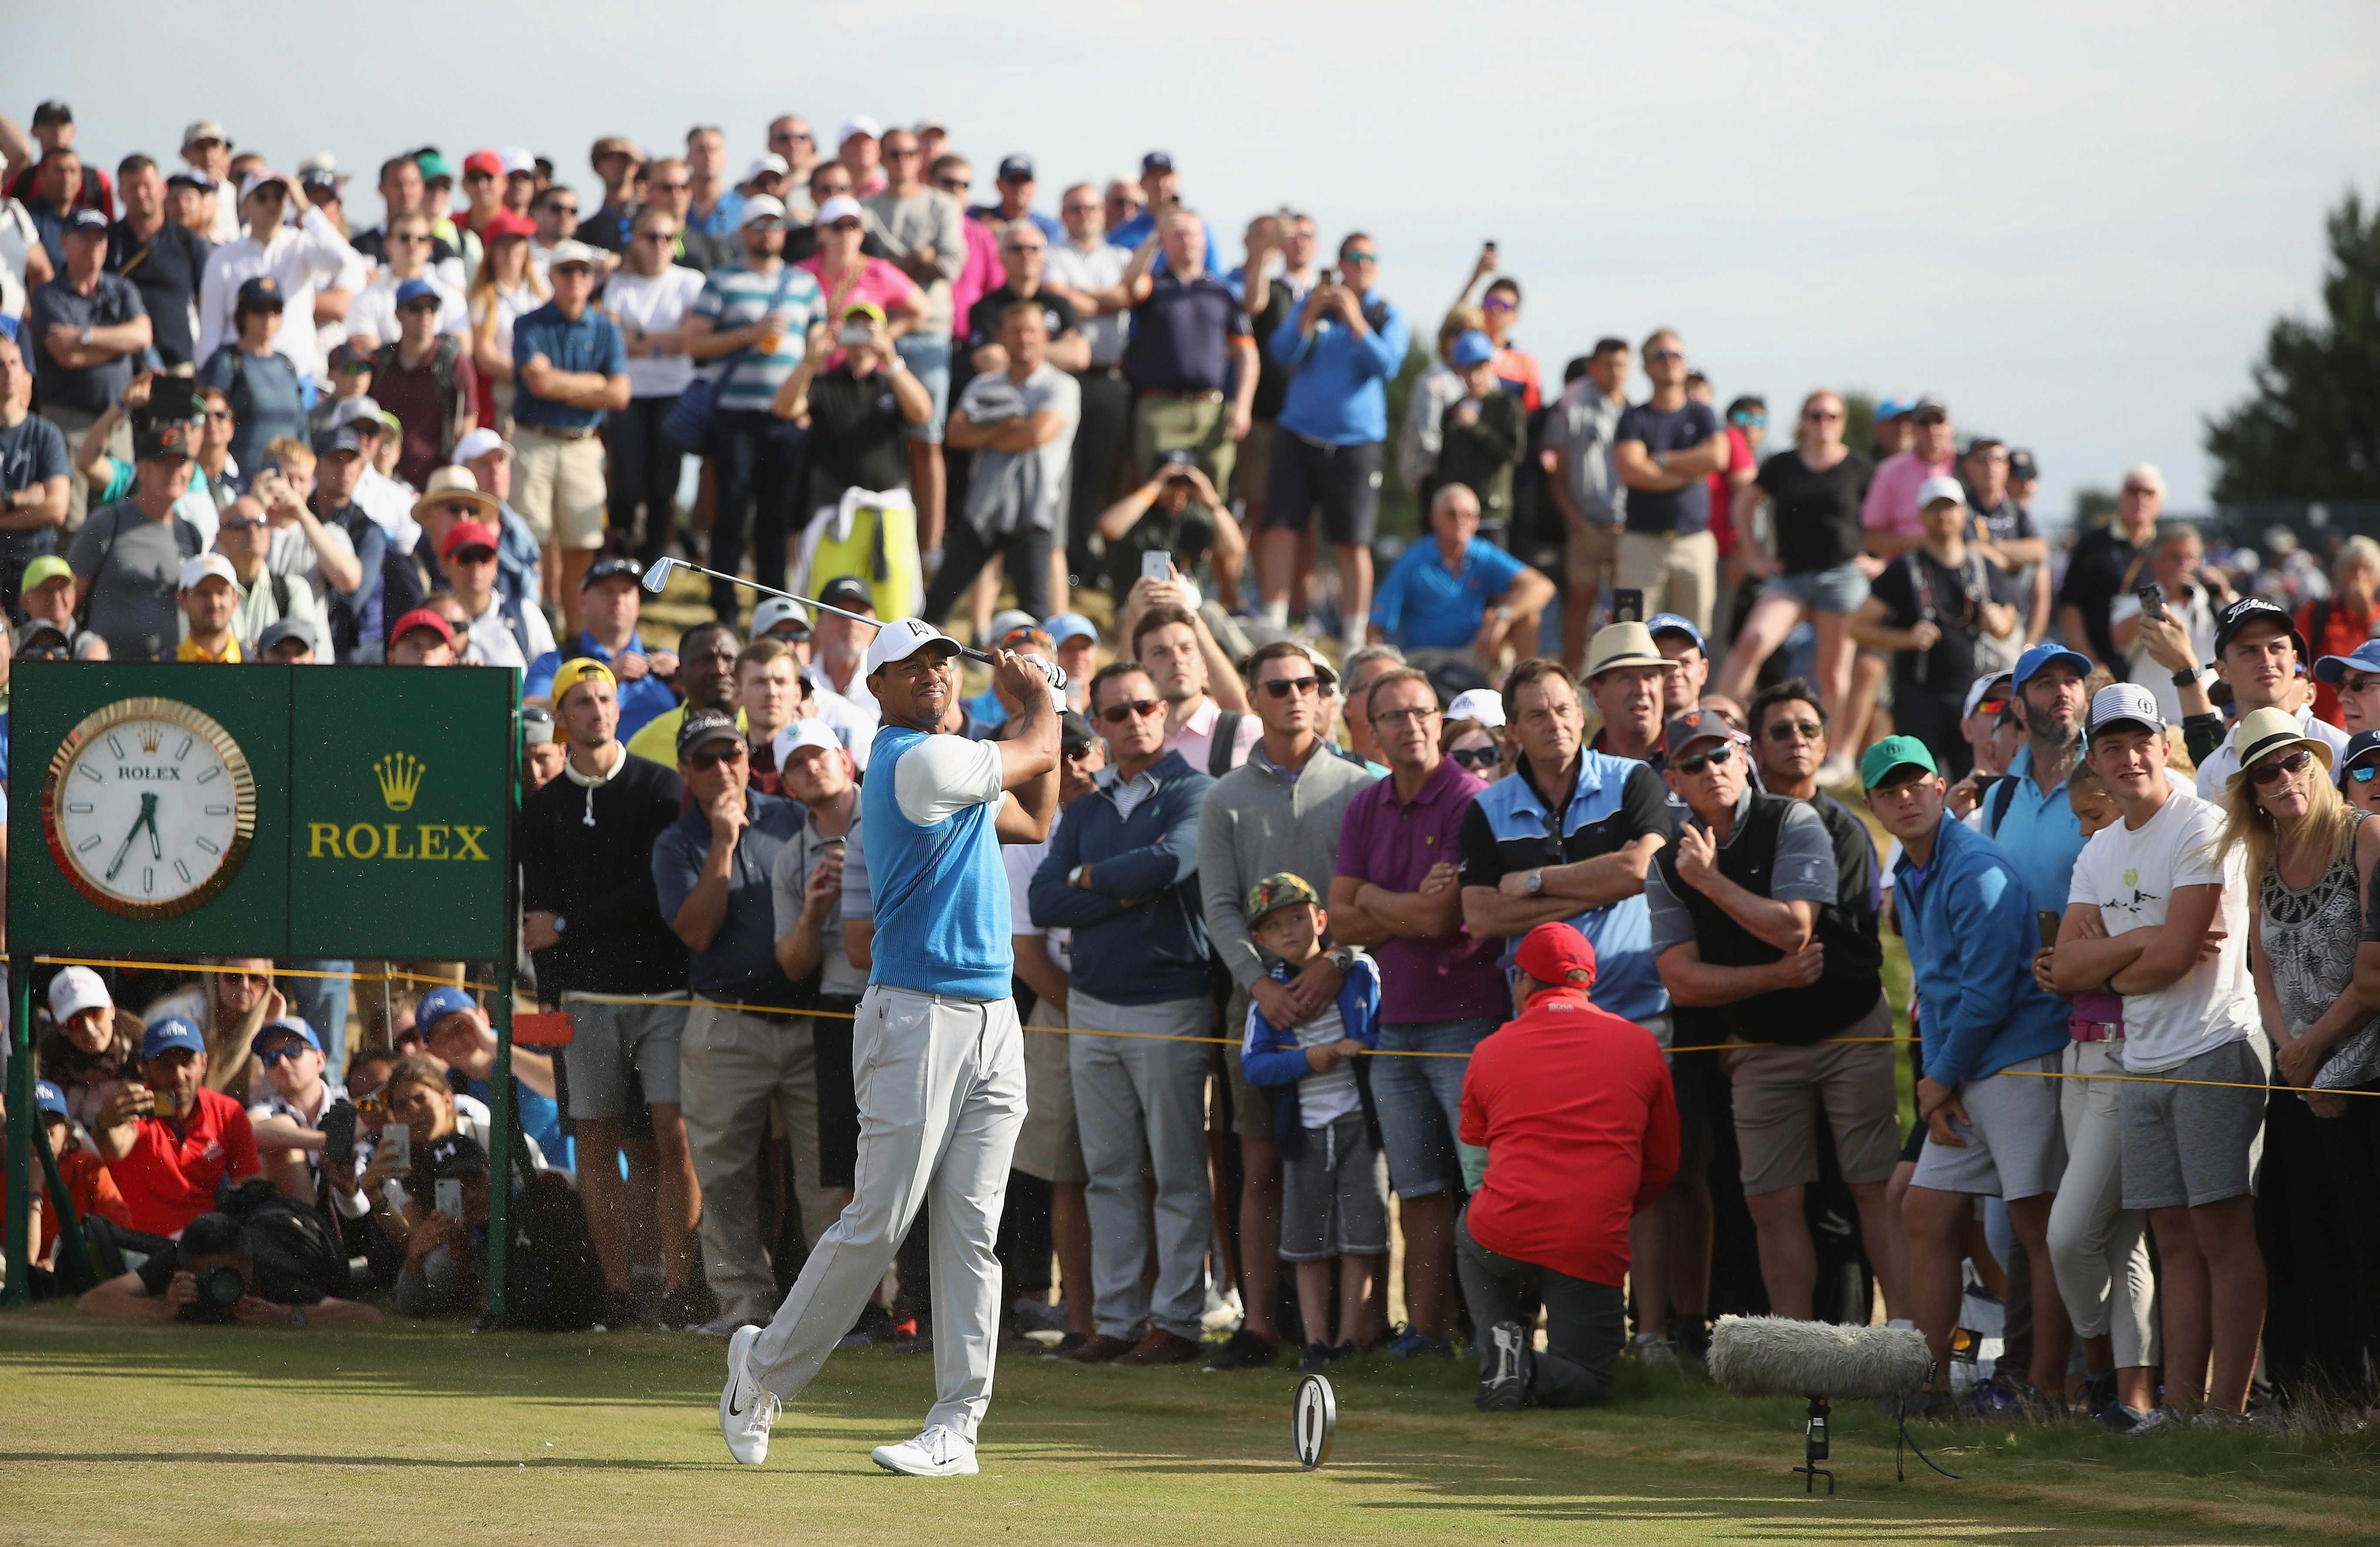 Tiger Woods is a living legend and still draws the most attention when he plays